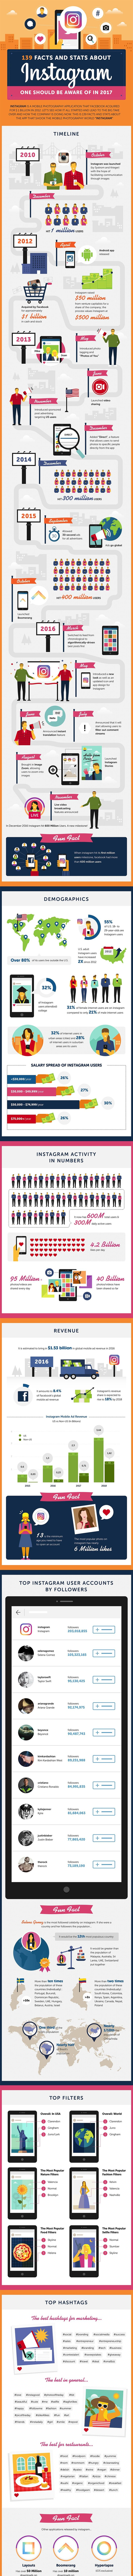 139 Facts about Instagram One Should Be Aware of in 2017 - infographic